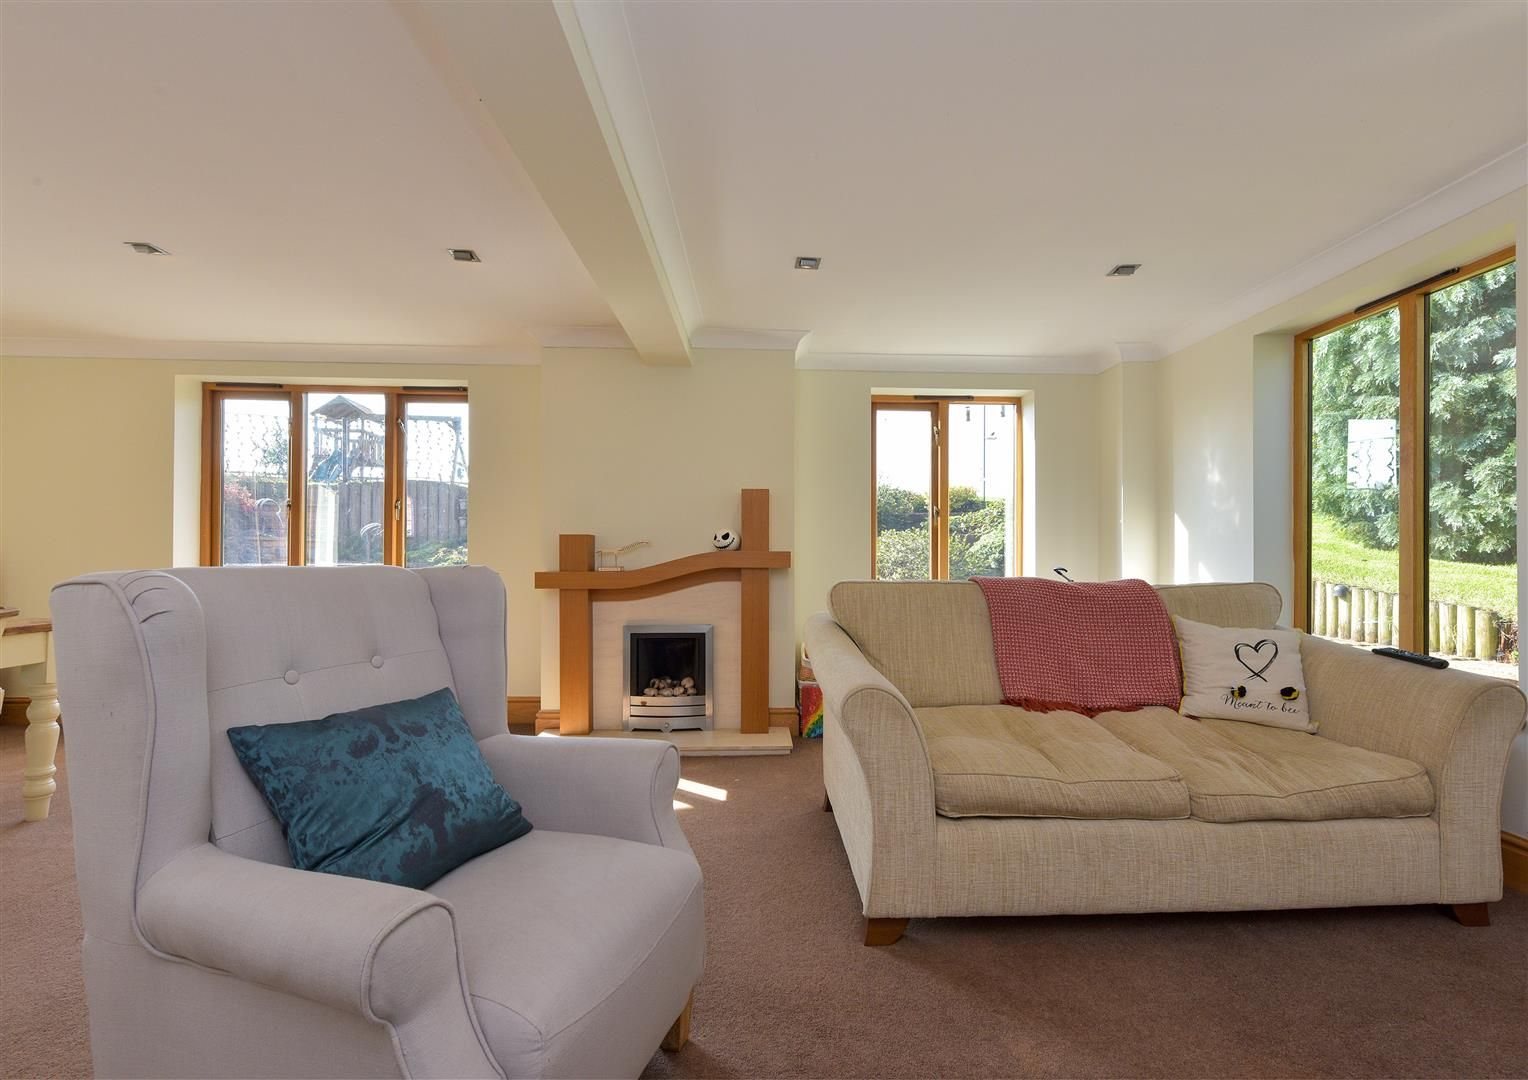 5 bed detached for sale in Broome  - Property Image 12